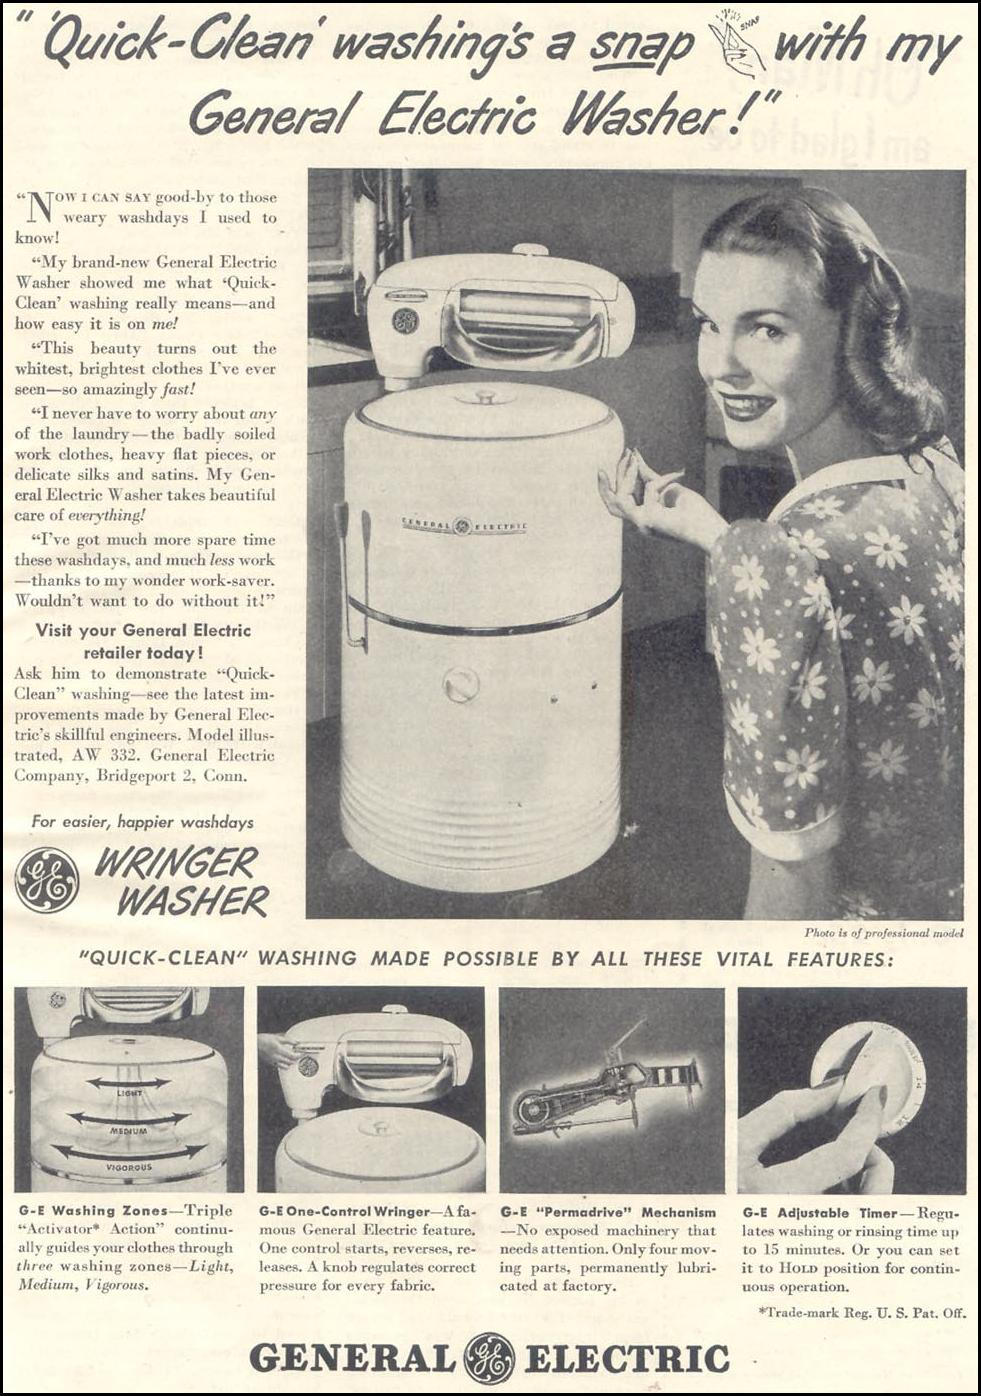 GENERAL ELECTRIC WRINGER WASHERS GOOD HOUSEKEEPING 07/01/1948 p. 131